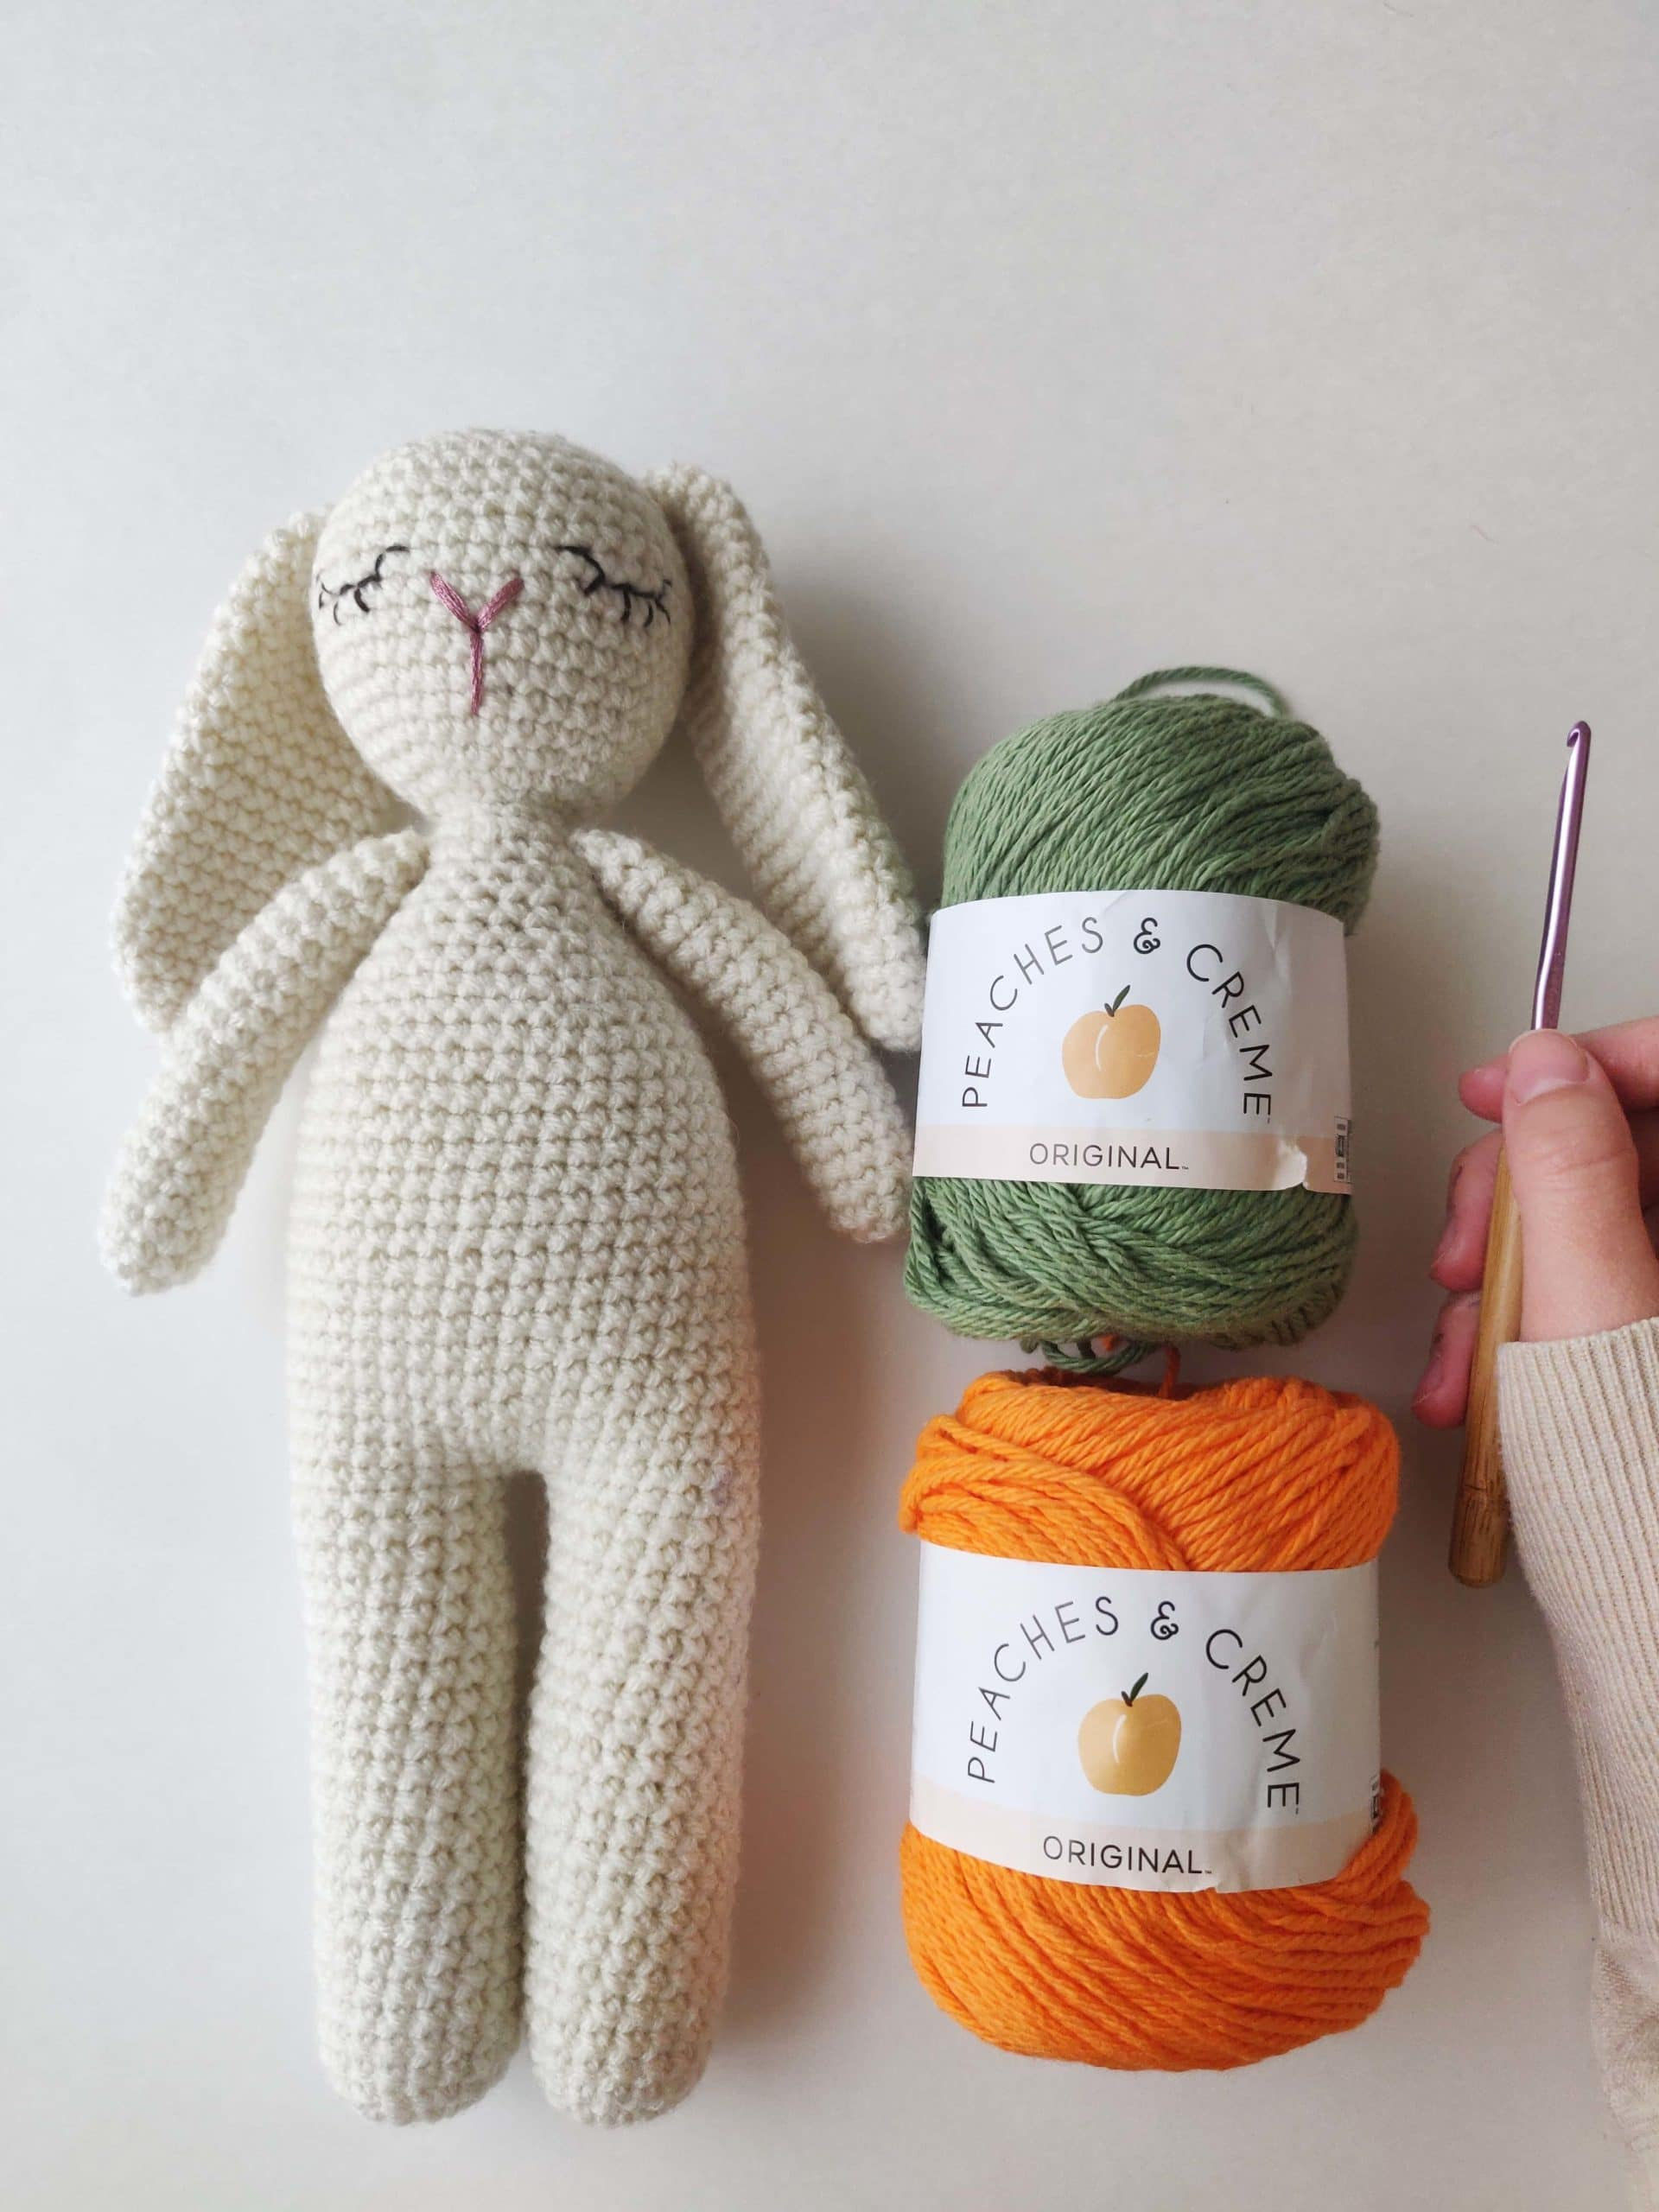 White crochet bunny with orange and green yarn on the right.